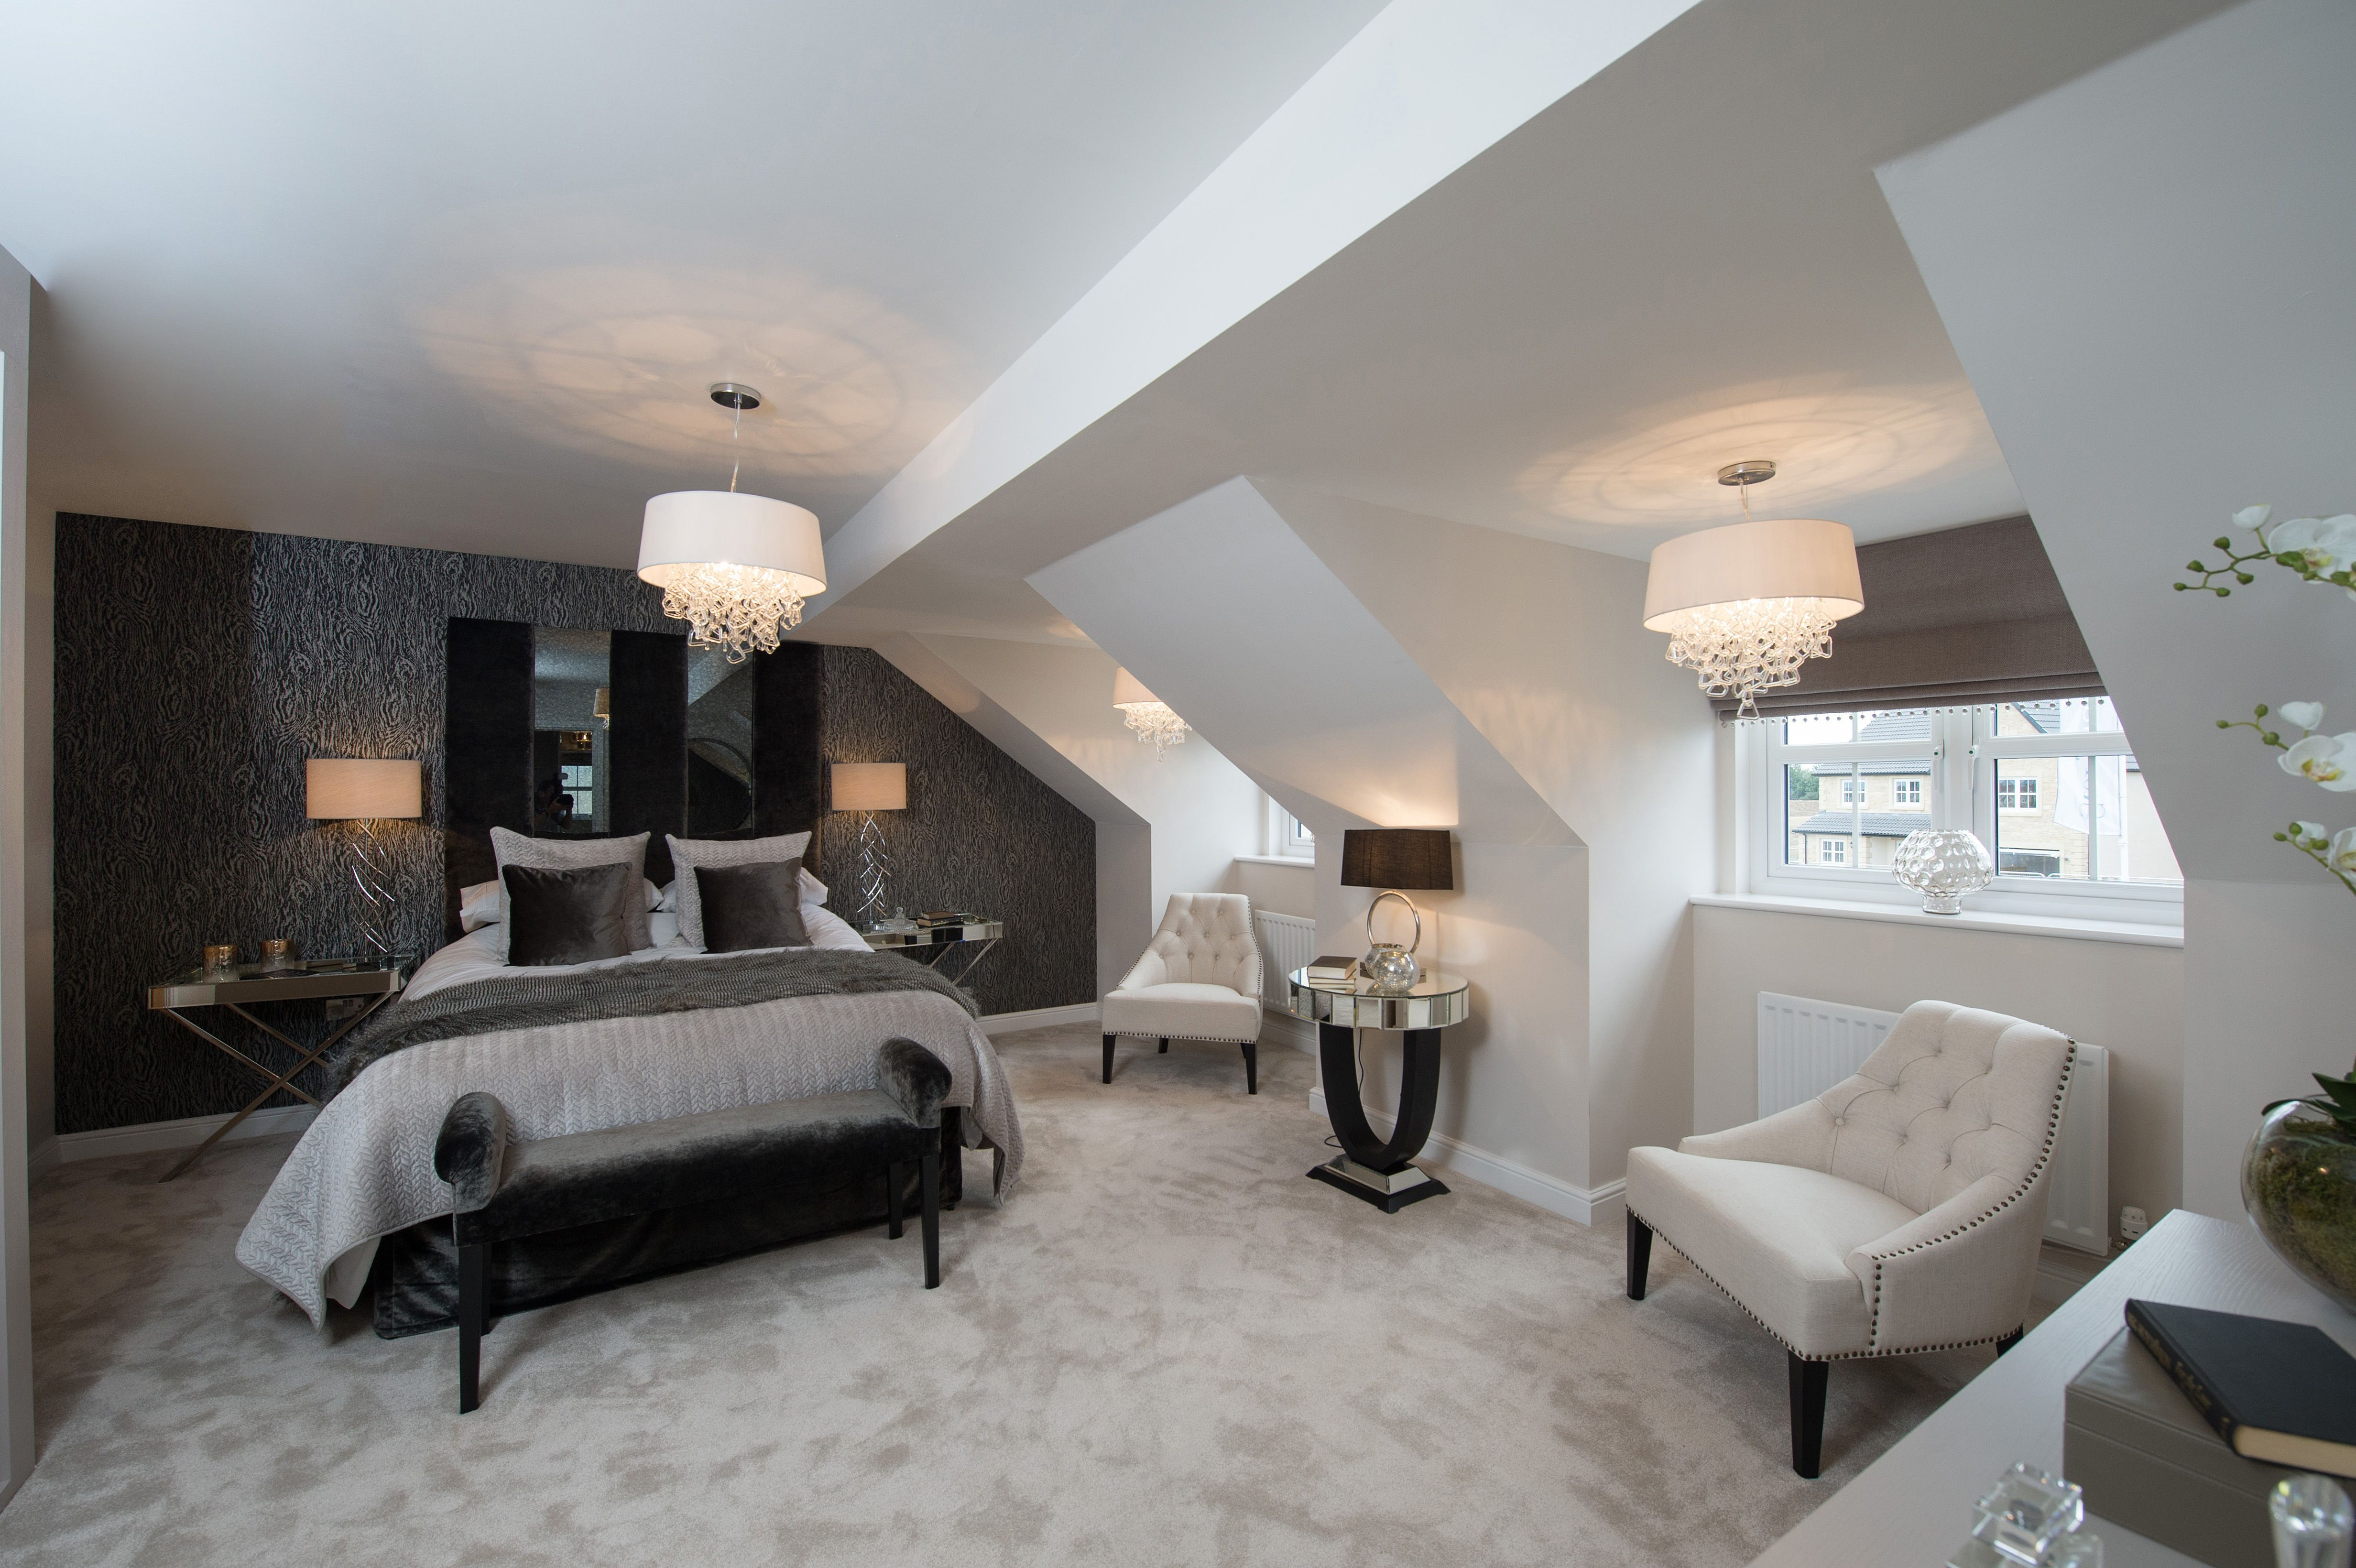 North Tyneside Homes Houses for Sale North Tyneside in